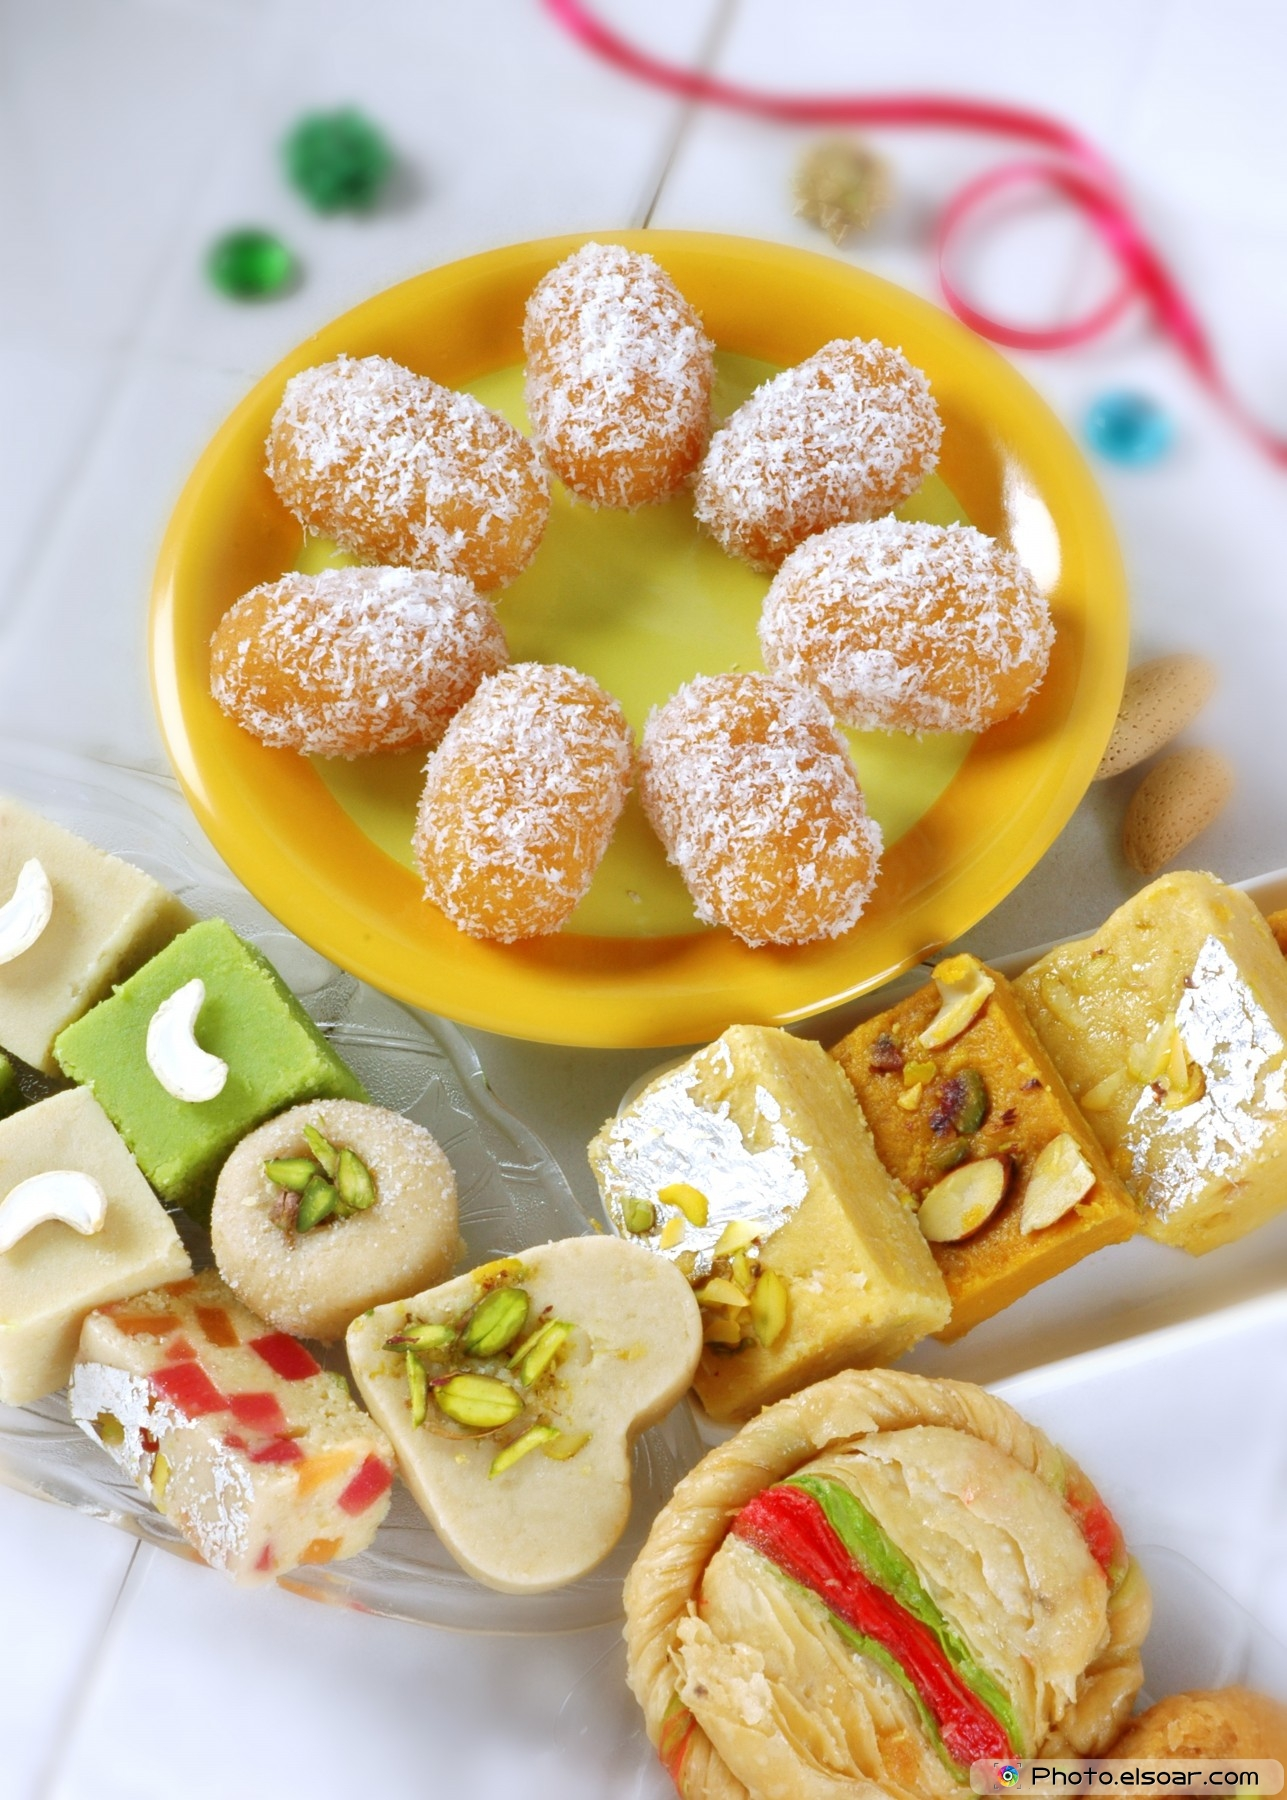 25 Delicious Indian Sweets. In Pictures - ELSOAR